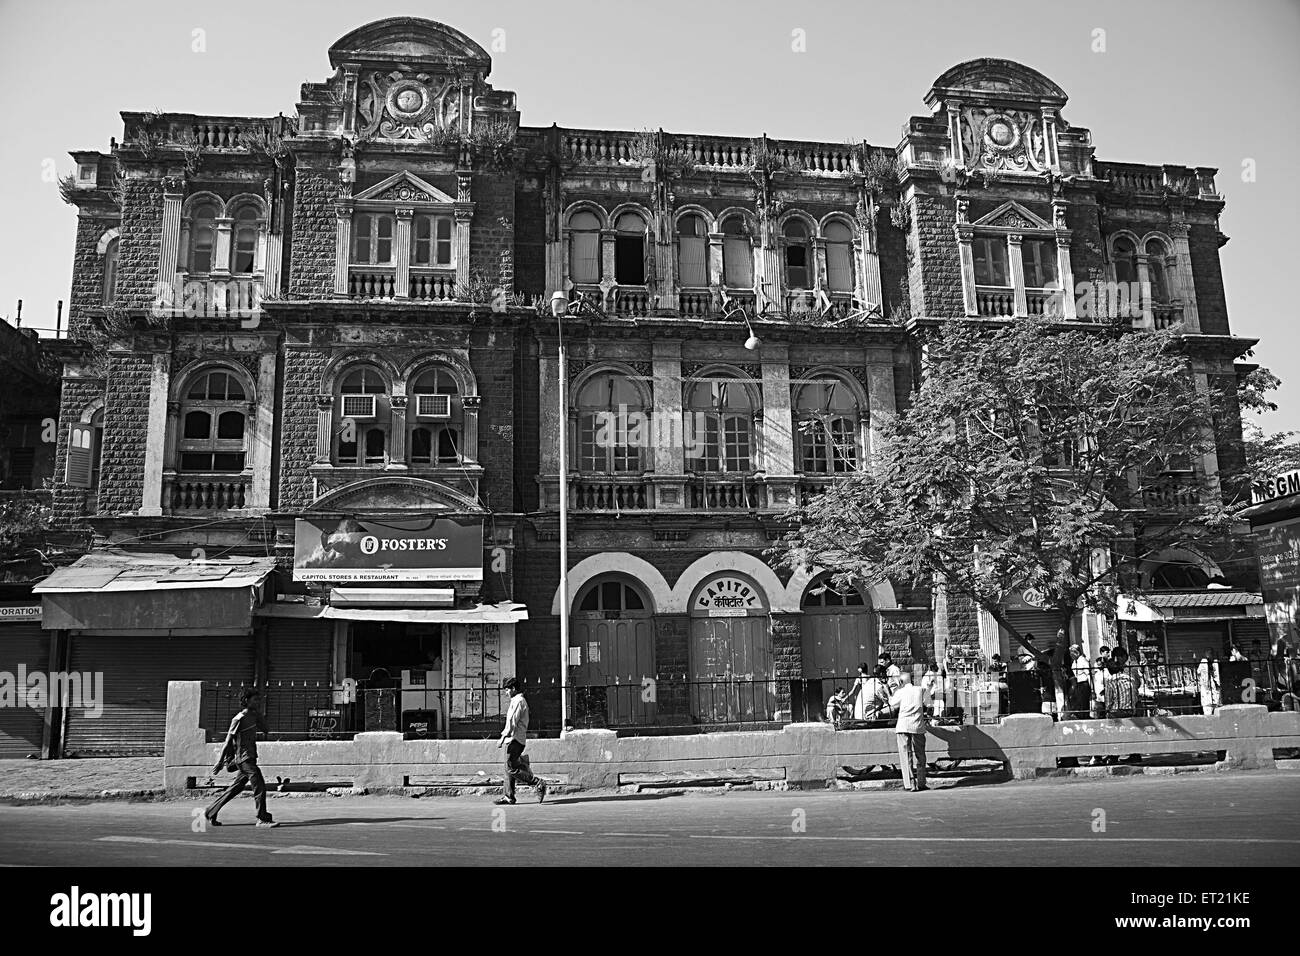 Capitol Cinema Hall Movie Theatre Mumbai Maharashtra India Asia - vhm 178376 - Stock Image